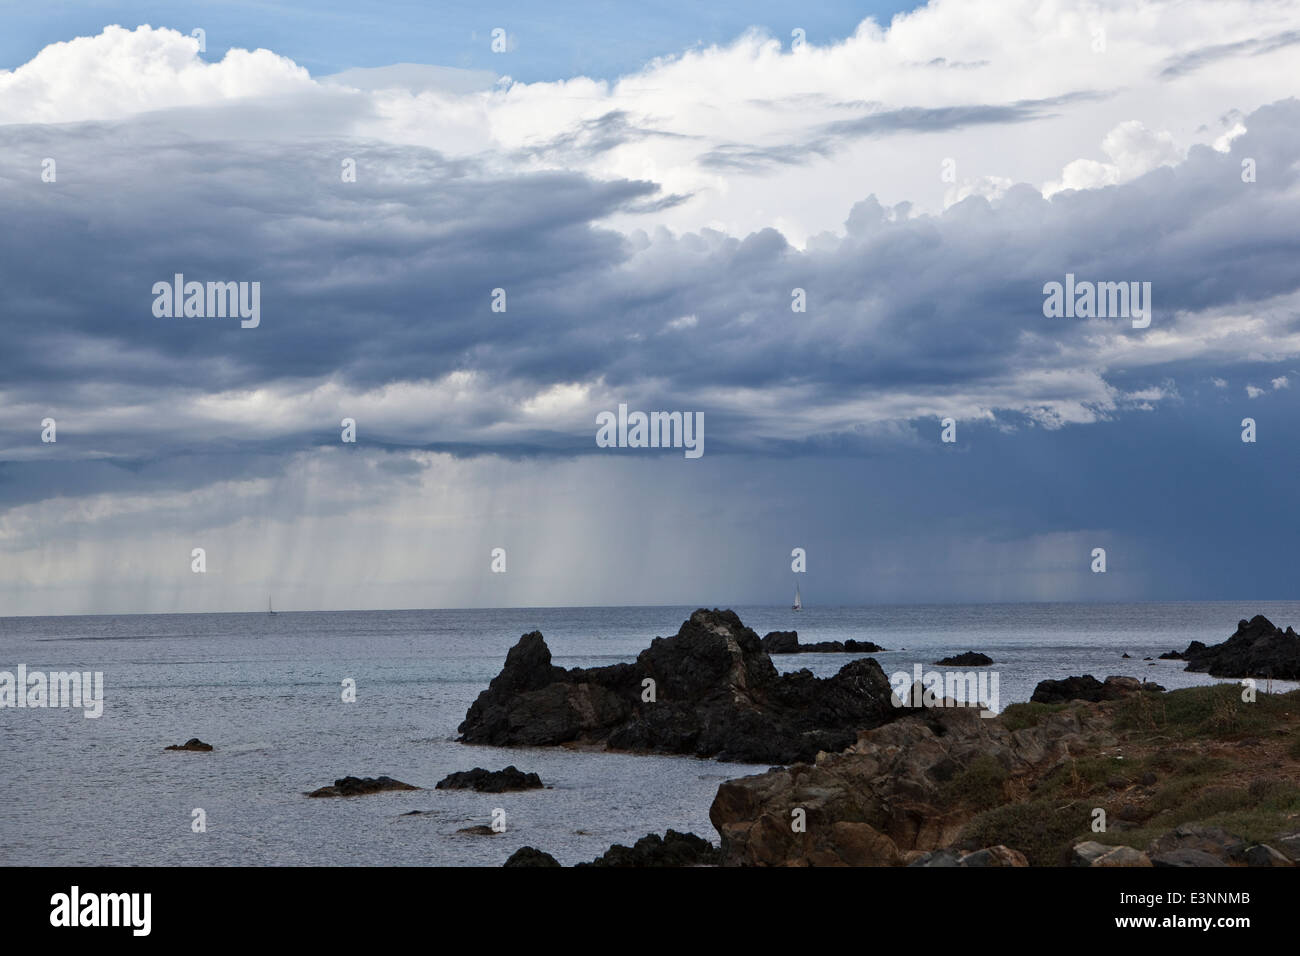 Sails under a squall out of Ajaccio (Corsica,France) - Stock Image